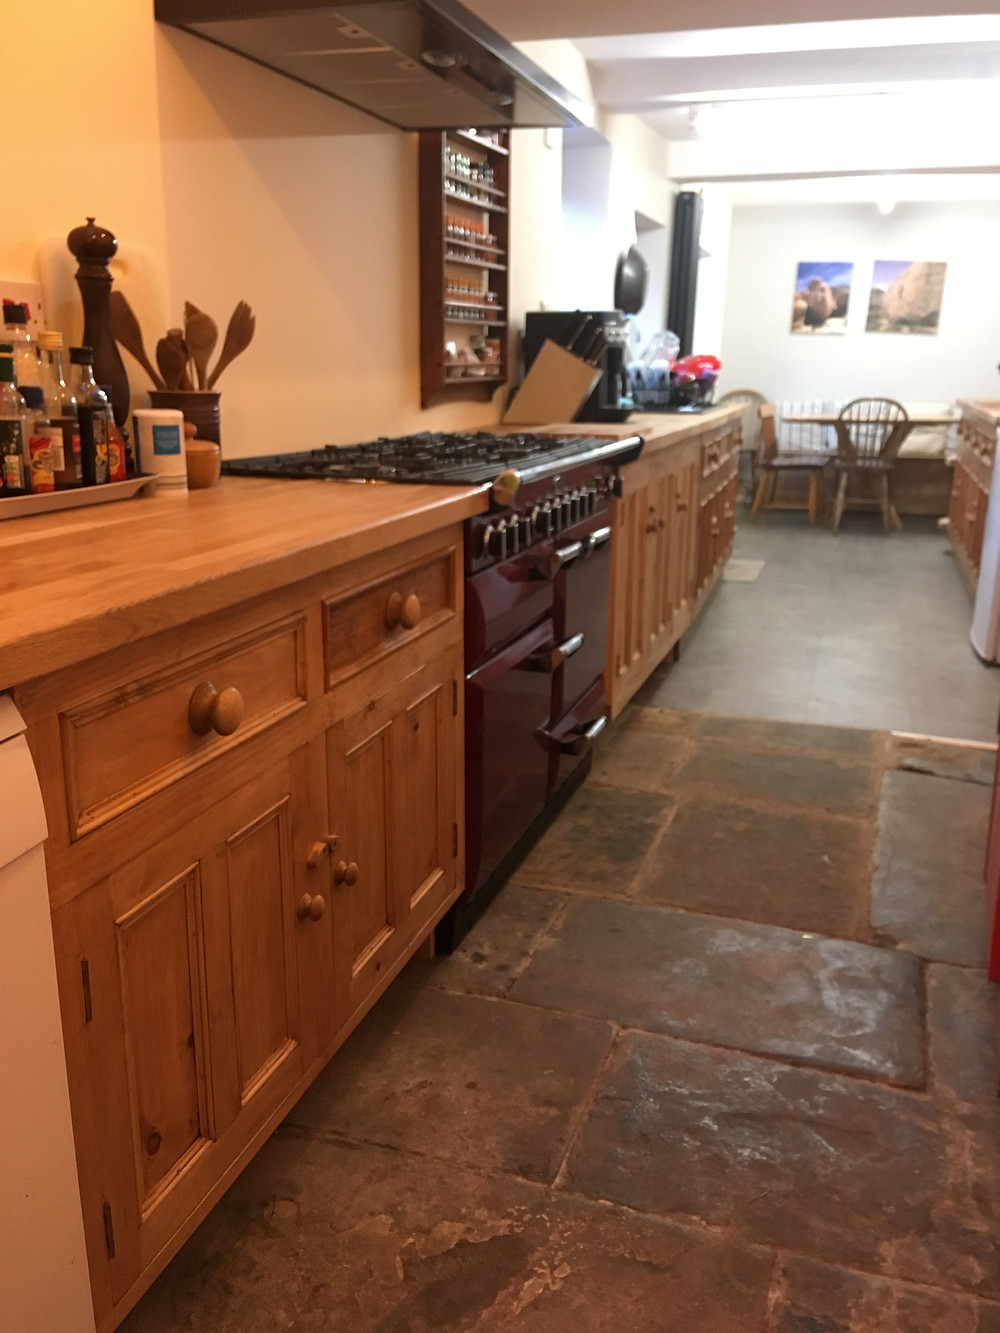 Not a very good photo of the new kitchen units - made to match the old ones!